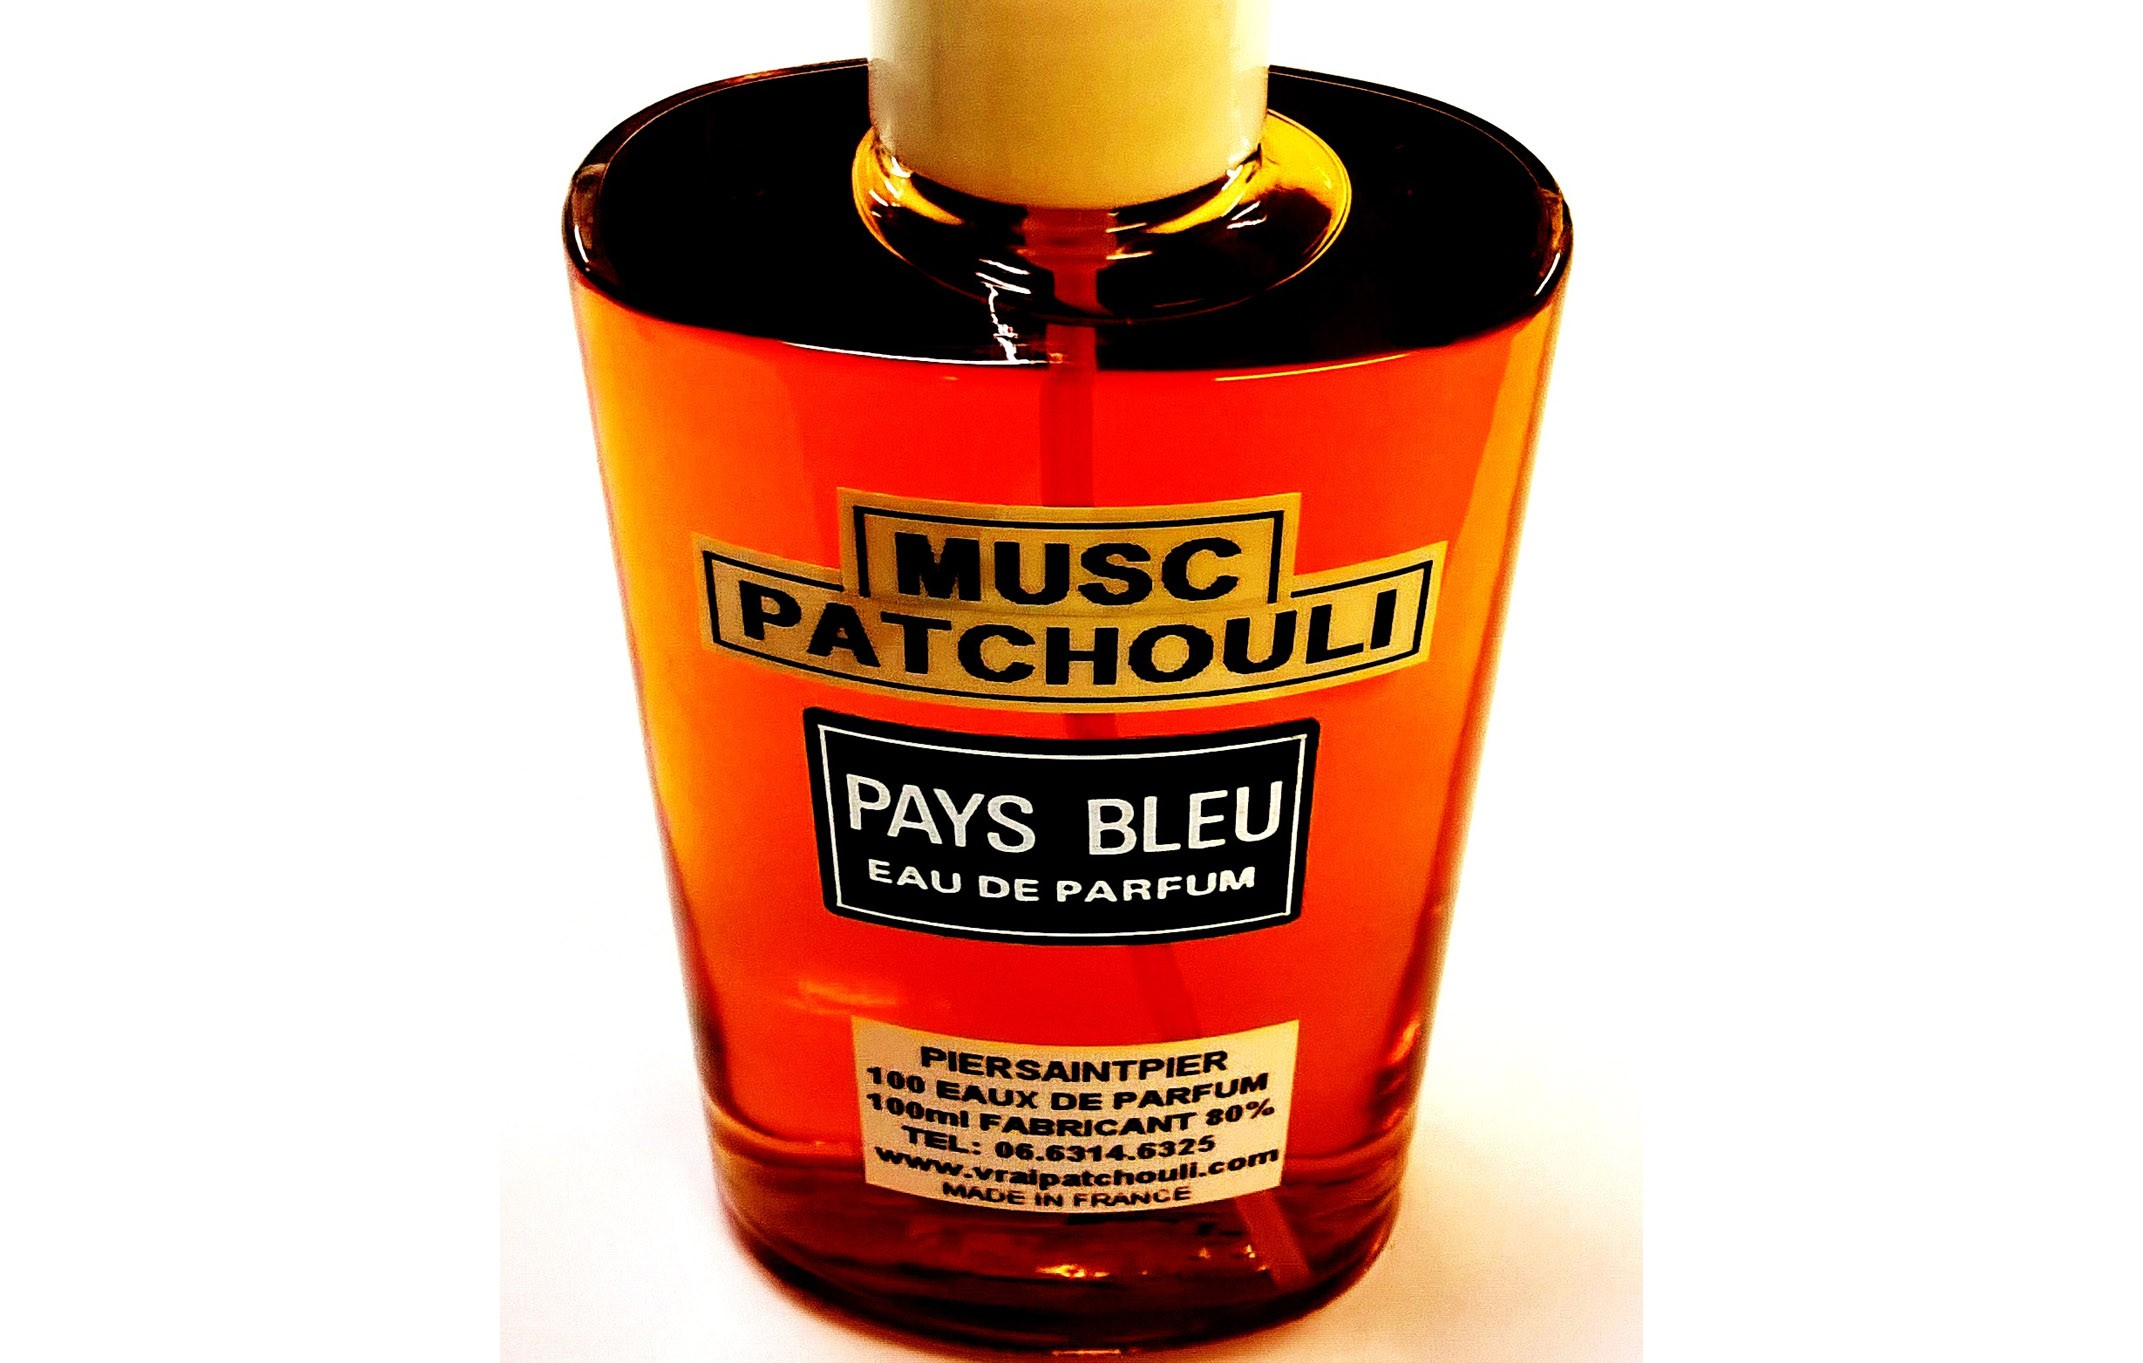 MUSC PATCHOULI (Flacon Simple / Sans Boite)